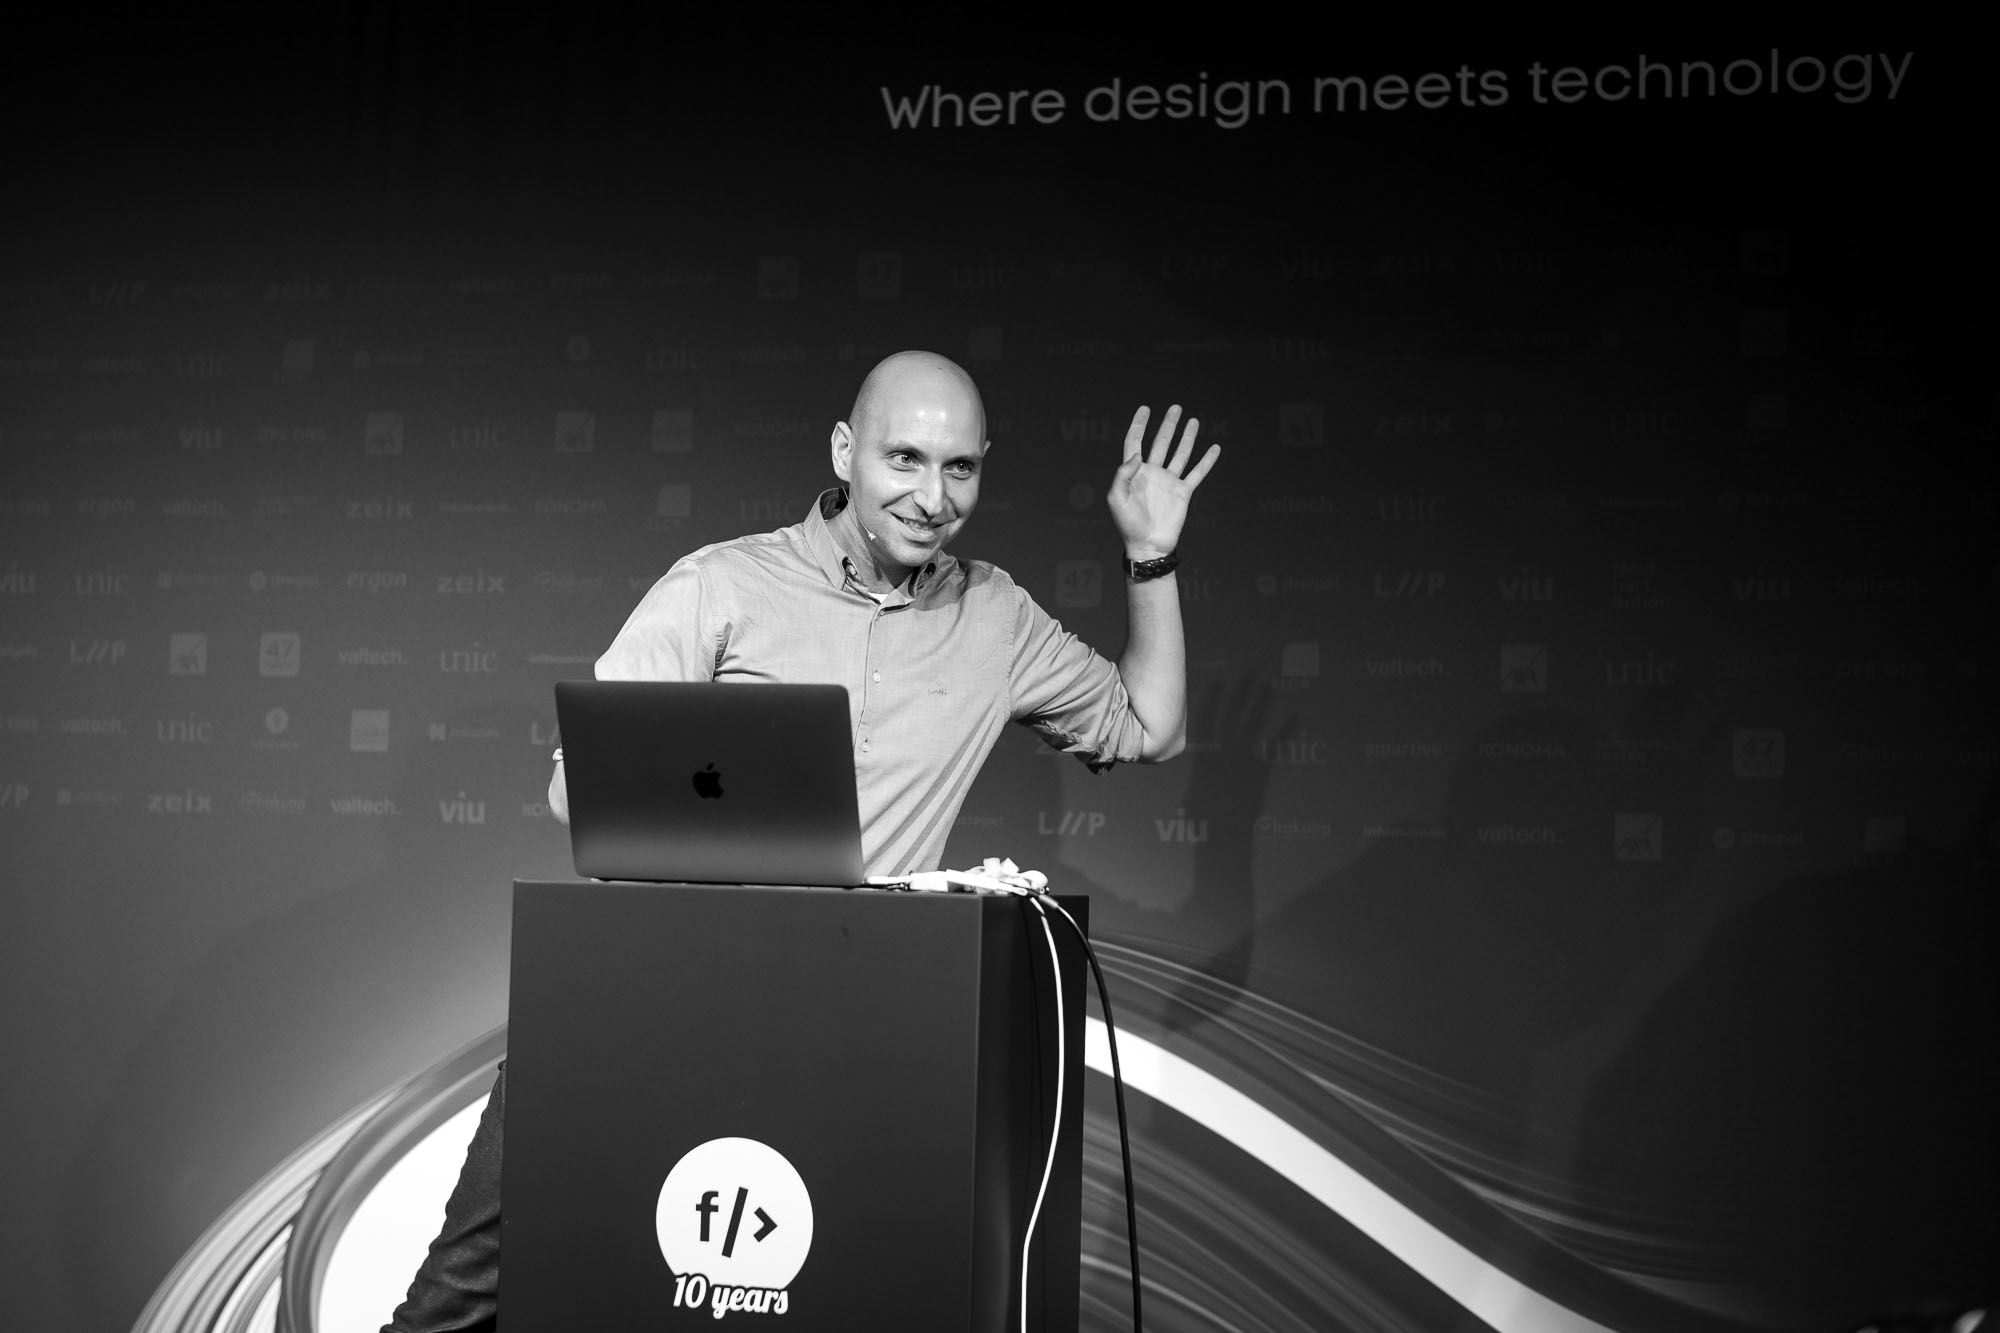 Vitaly Friedman on stage at Front Conference 2021